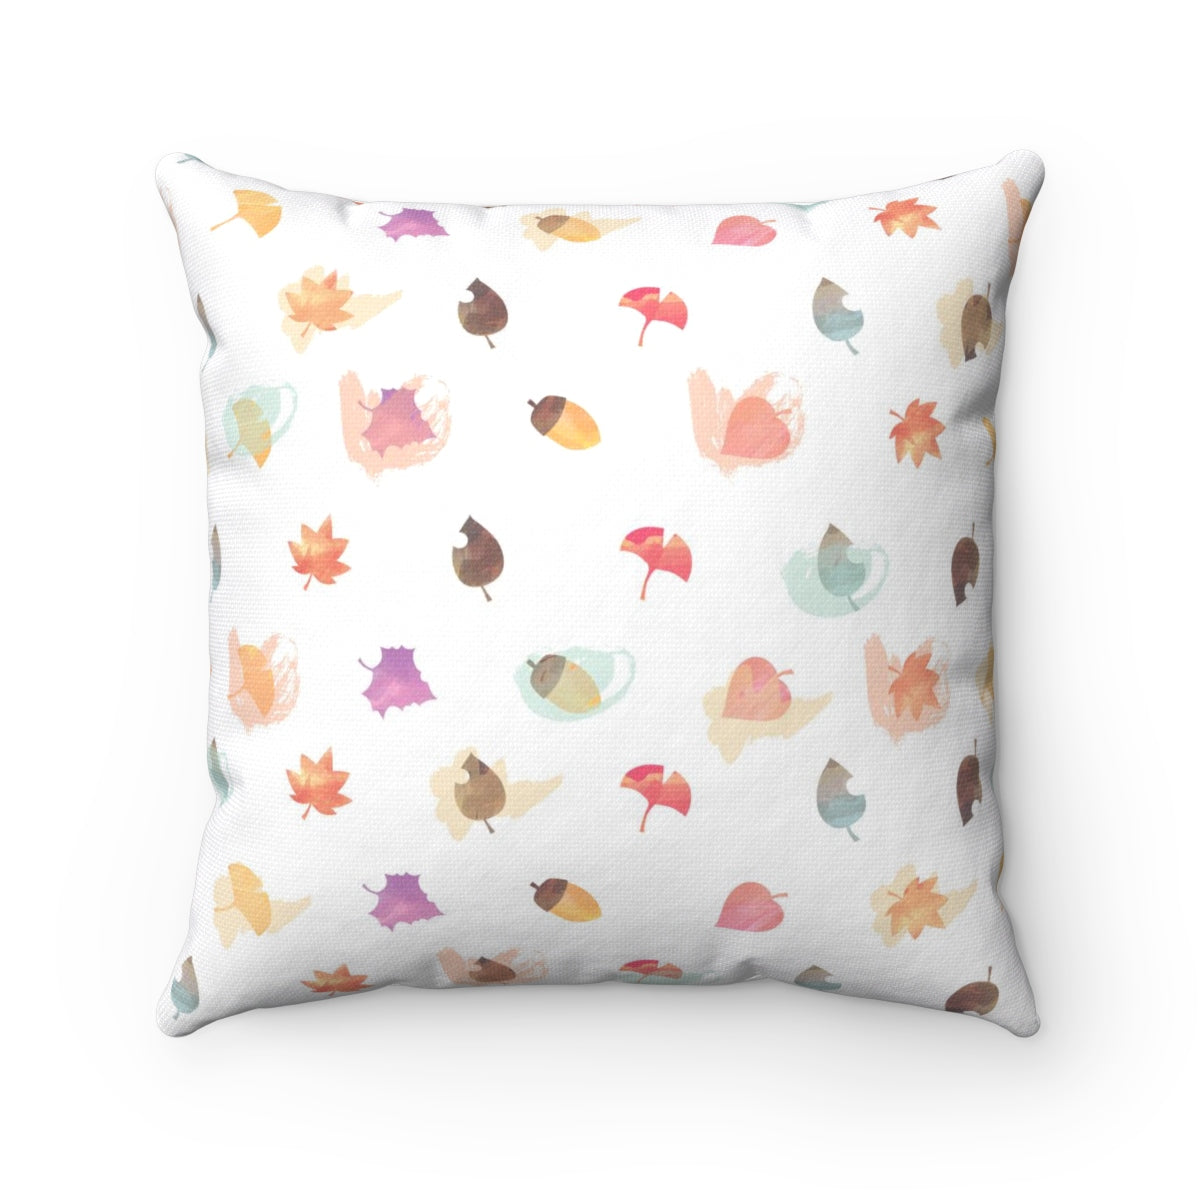 It's Fall Ya'll Mint Spun Polyester Square Pillow Case